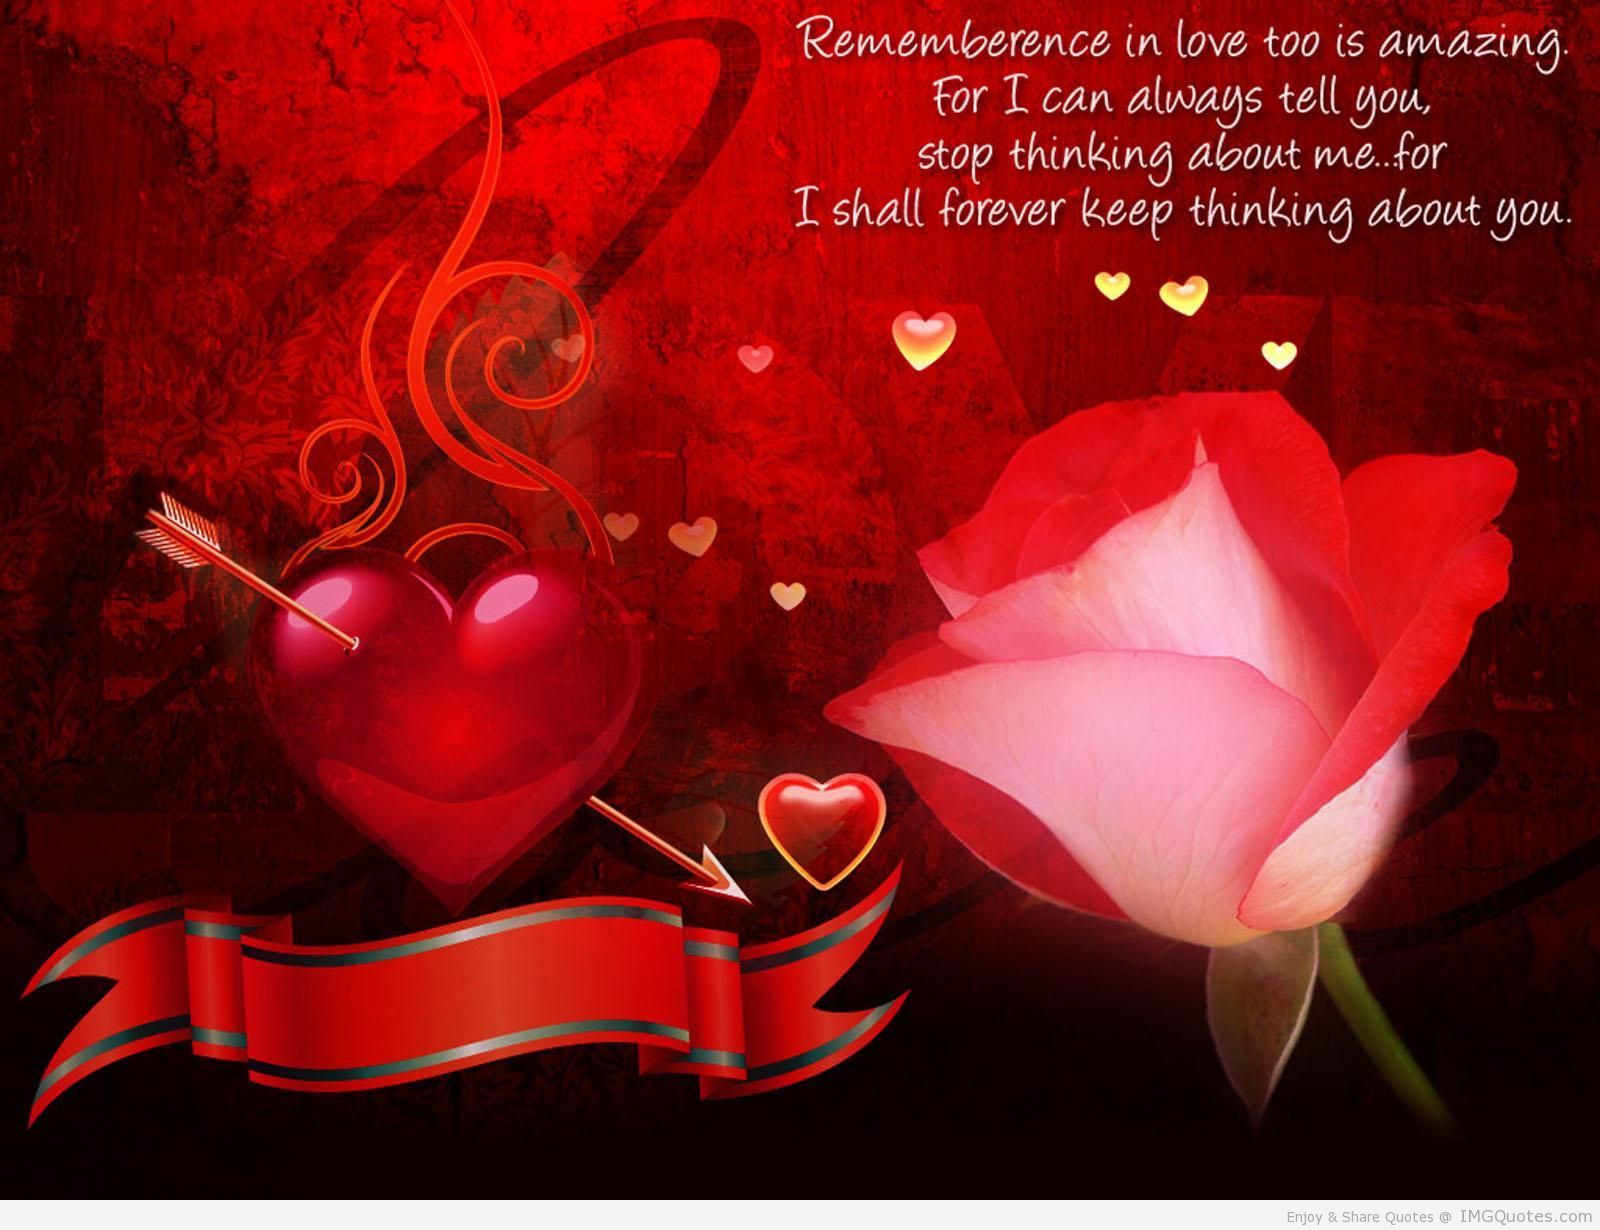 Free Download Quotes Of Sweet Love Heart Wallpaper   Quotes Of Sweet Love  Heart Wallpaper For